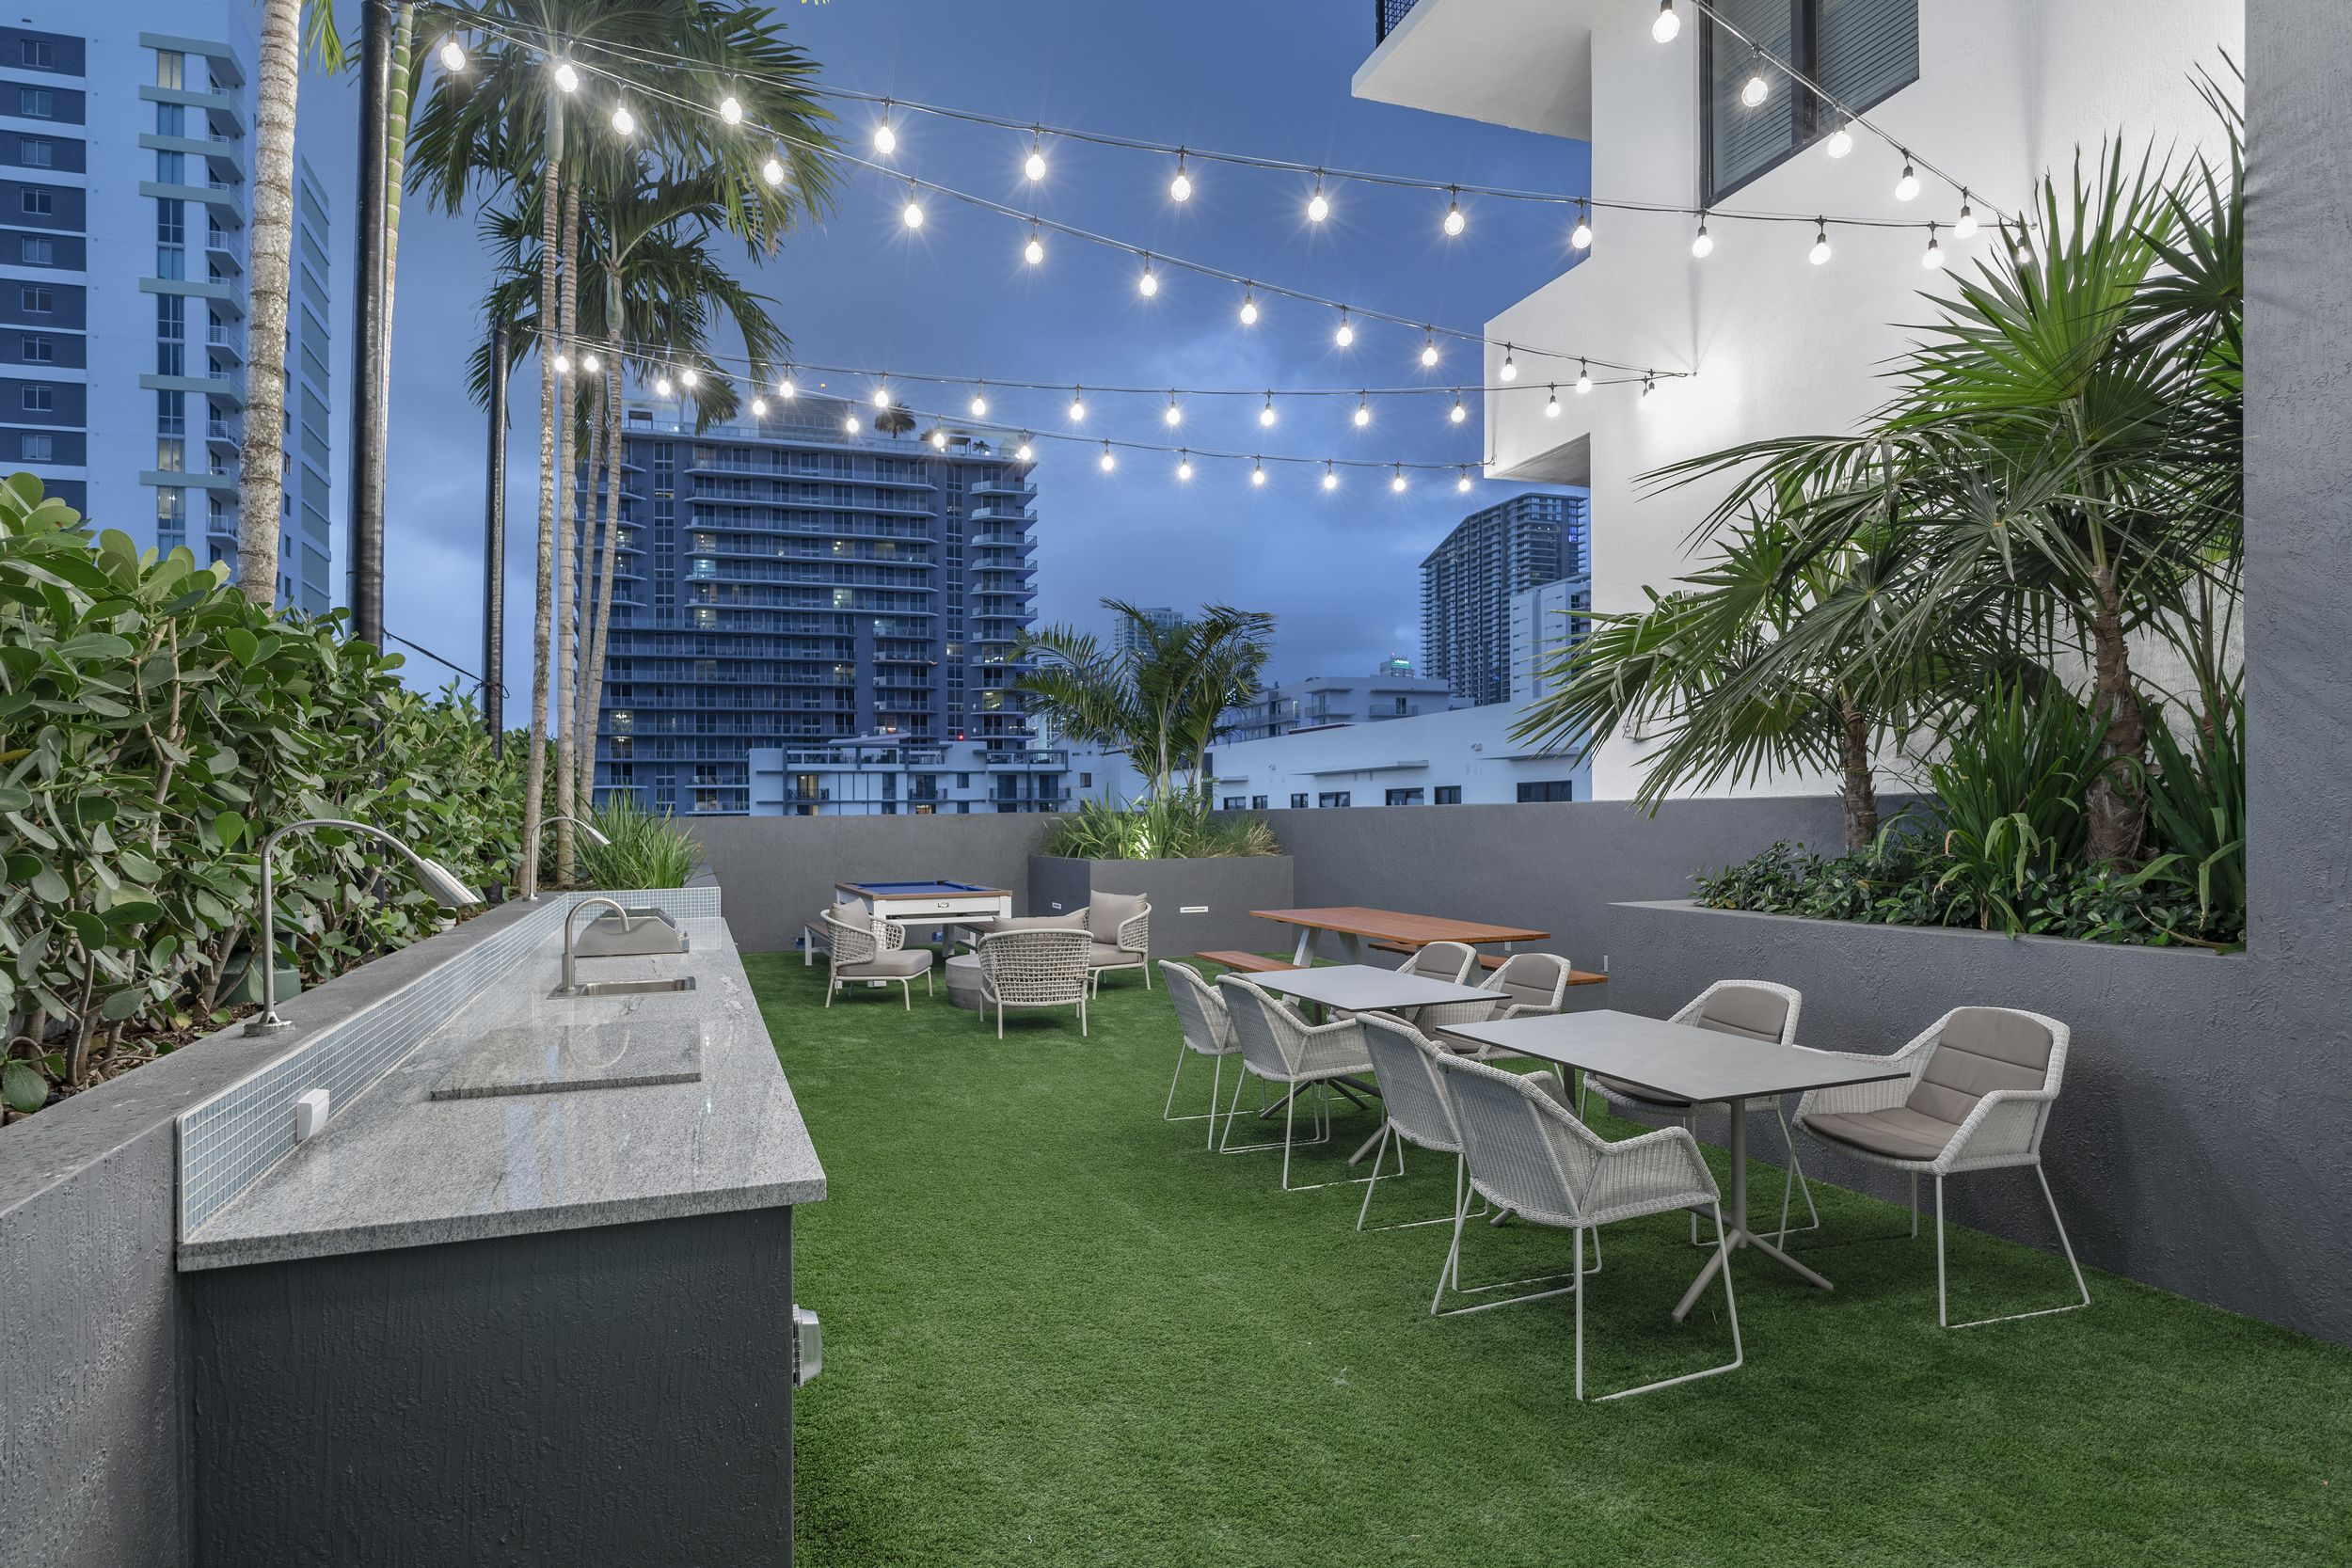 rooftop gathering area with seating and tables